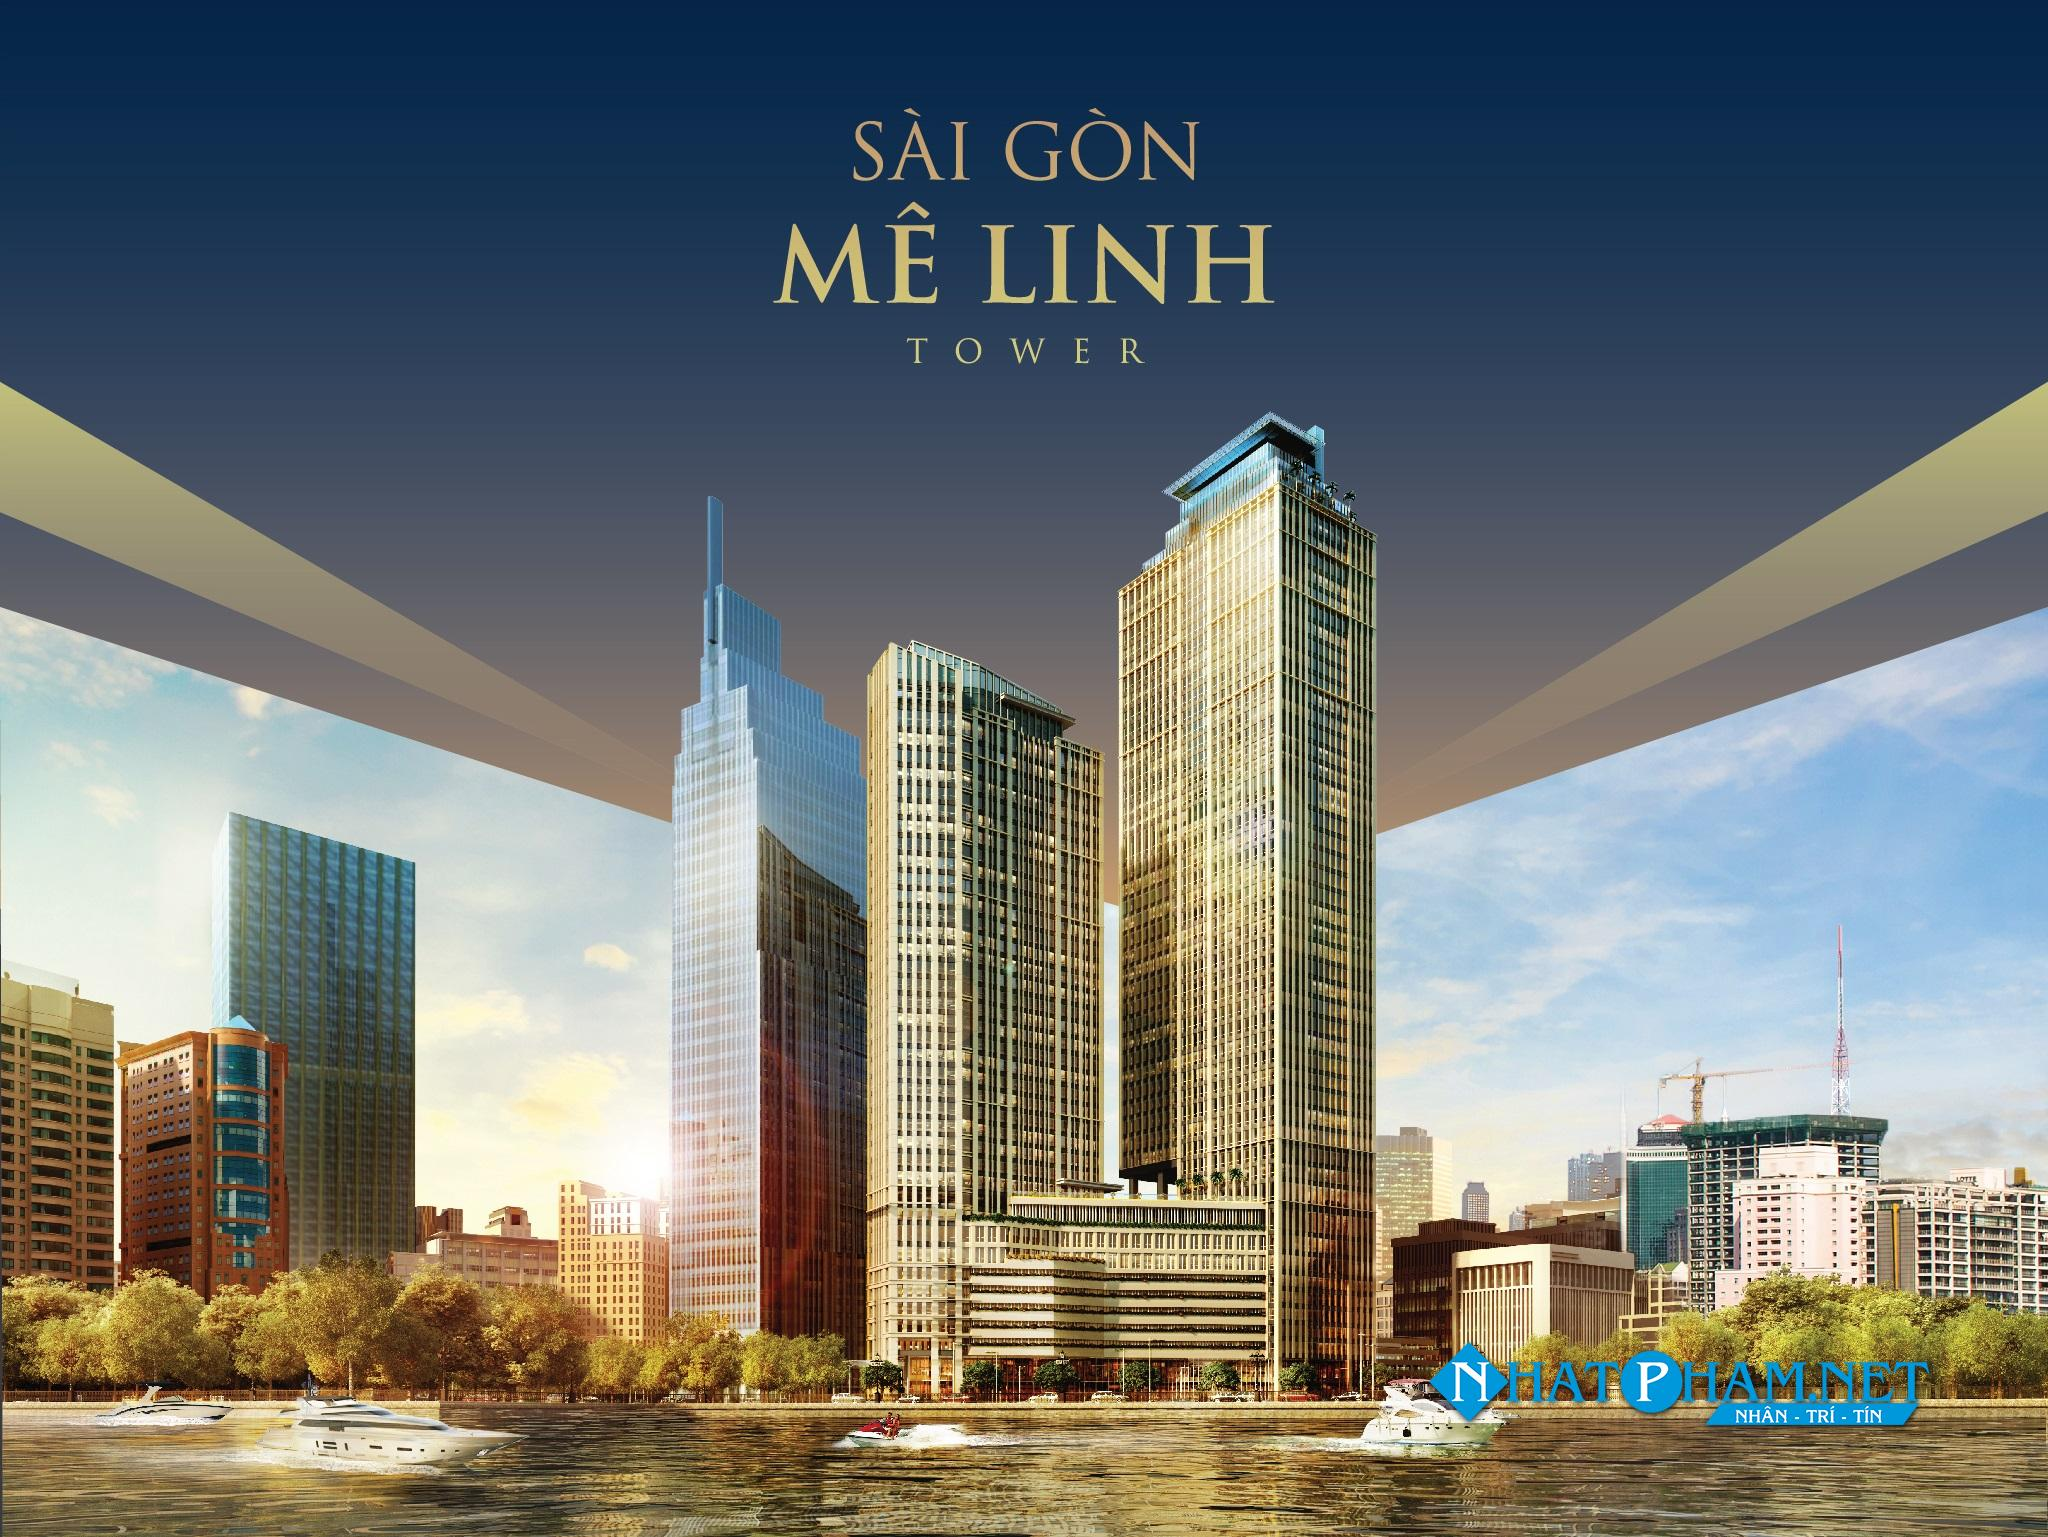 sai gon me linh tower